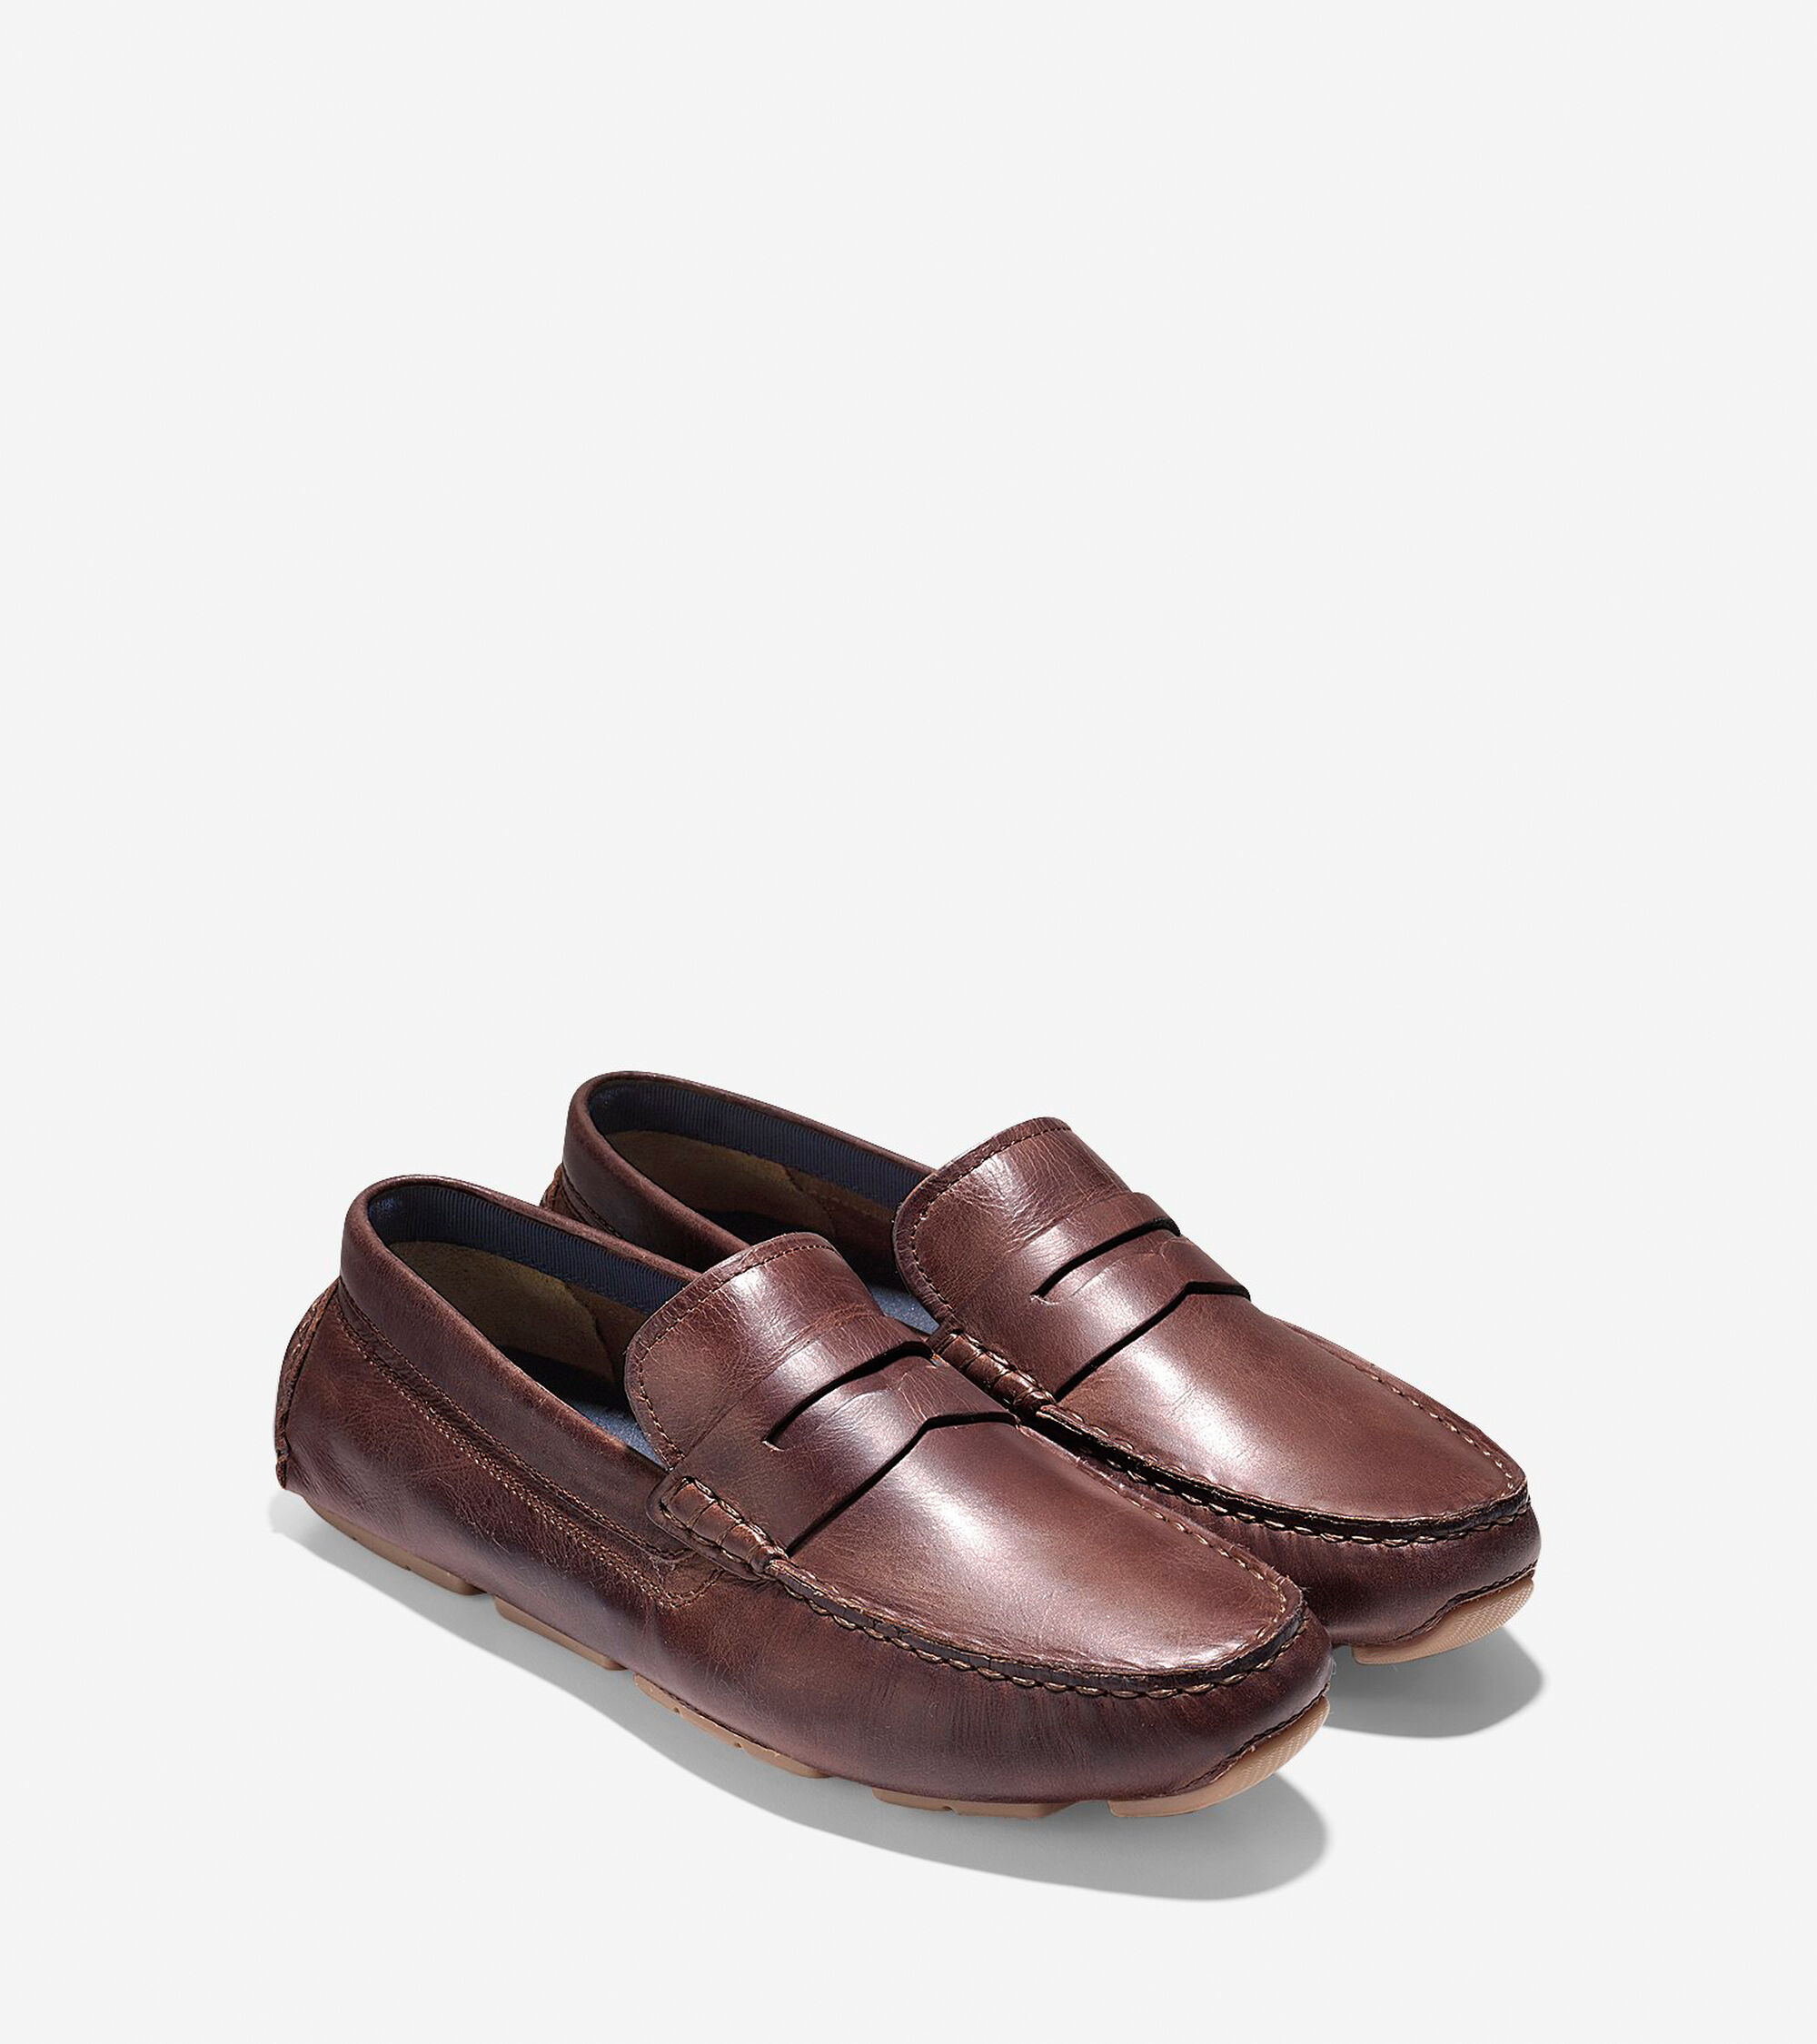 4383c0b60c9 Kelson Penny Loafers in British Tan   Mens Shoes